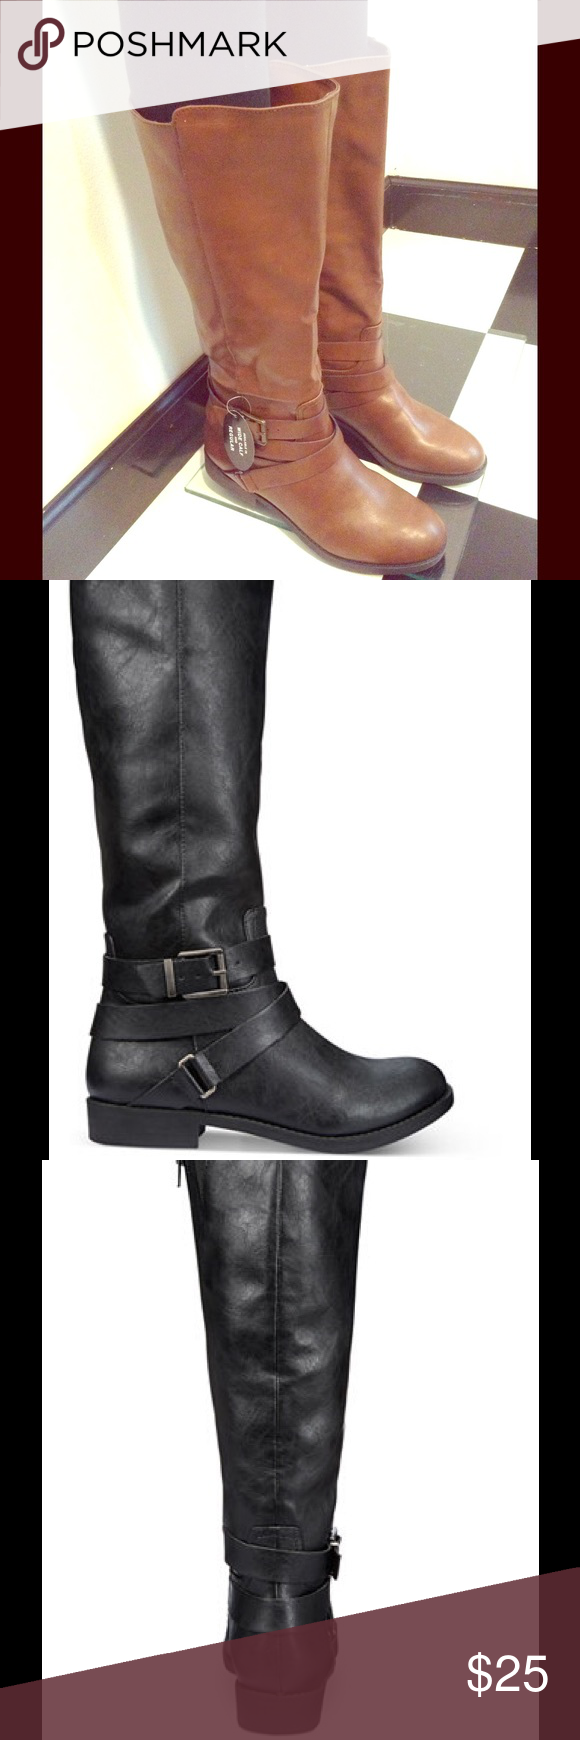 Cute Riding Boots Cute riding boots features the wrap- around buckle at the ankle. Boots are cognac in color size 9 with 1-inch heel, 15- inch height, 17-inch circumference. Boots are comfortable and cute for a date night or everyday wear box included. Style & Co Shoes Heeled Boots